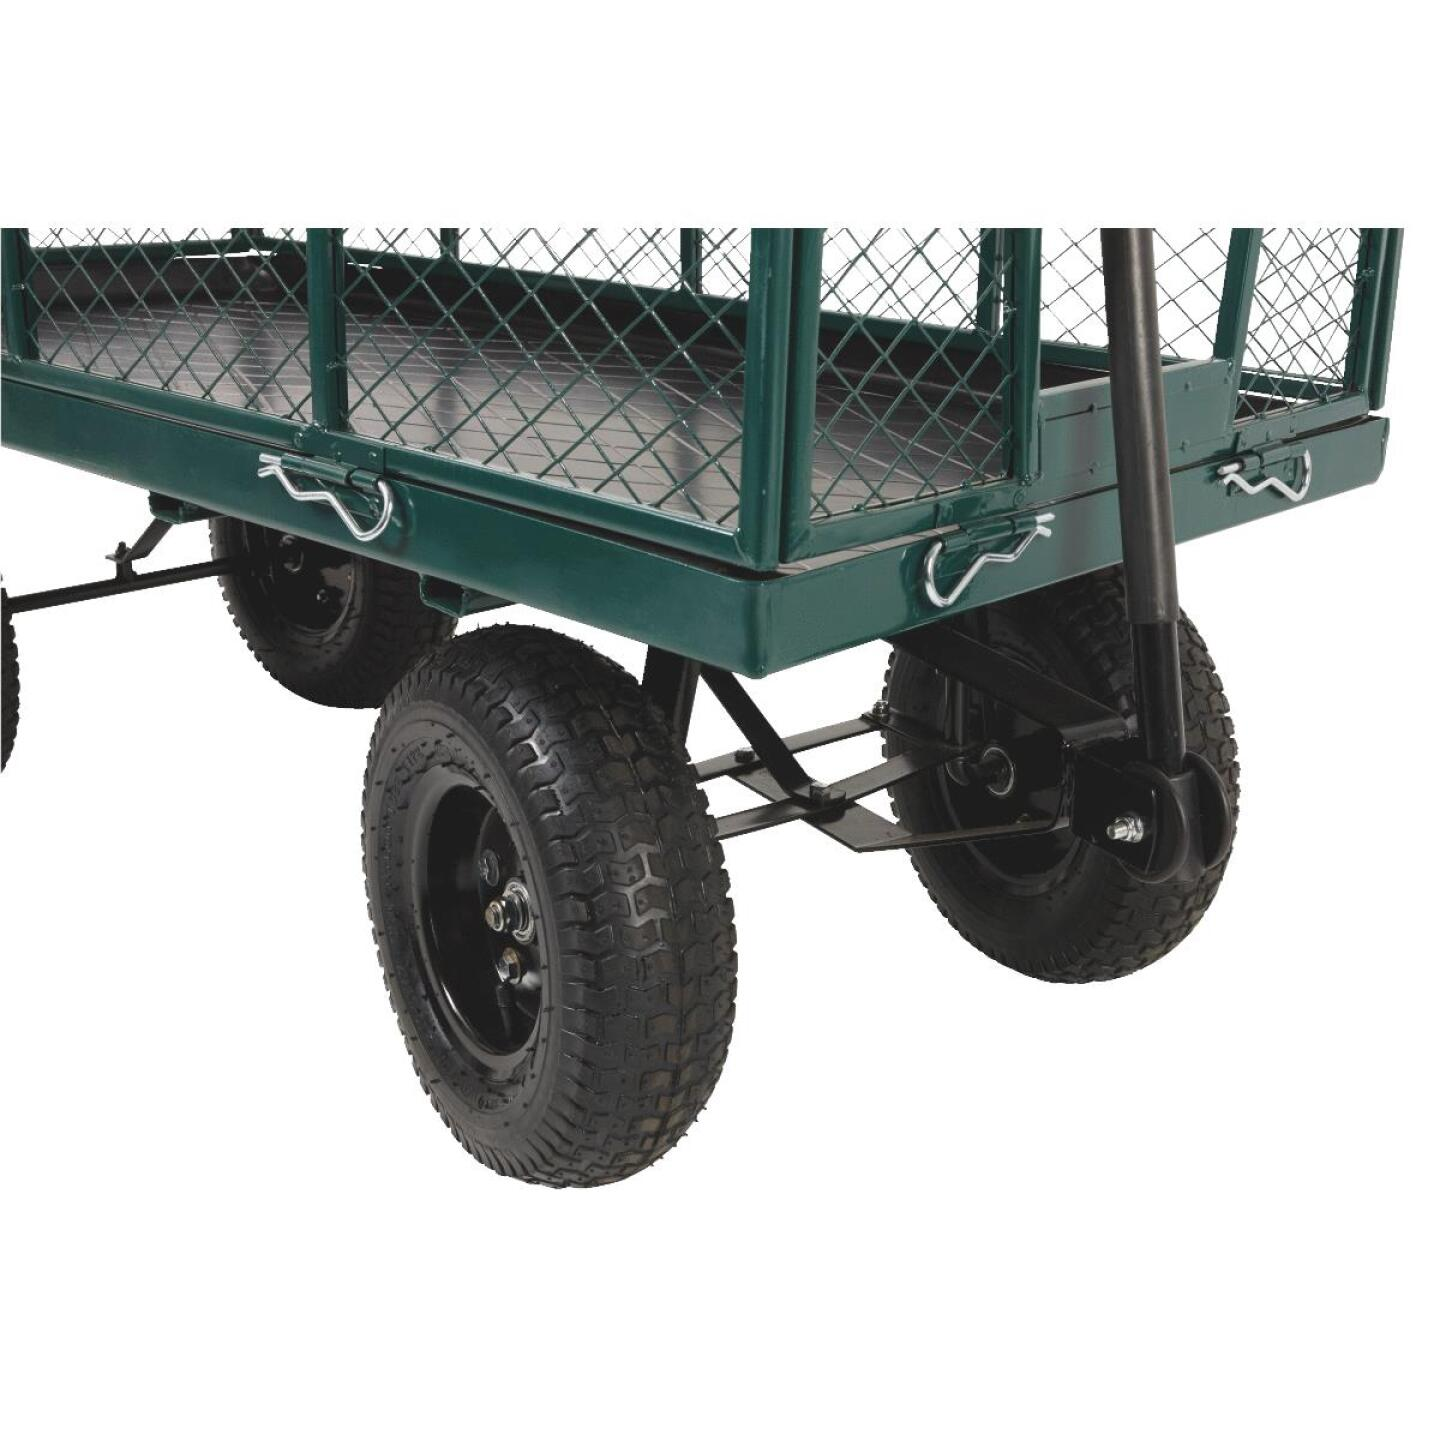 Best Garden 1000 Lb. Steel Garden Cart with Collapsible Sides Image 6